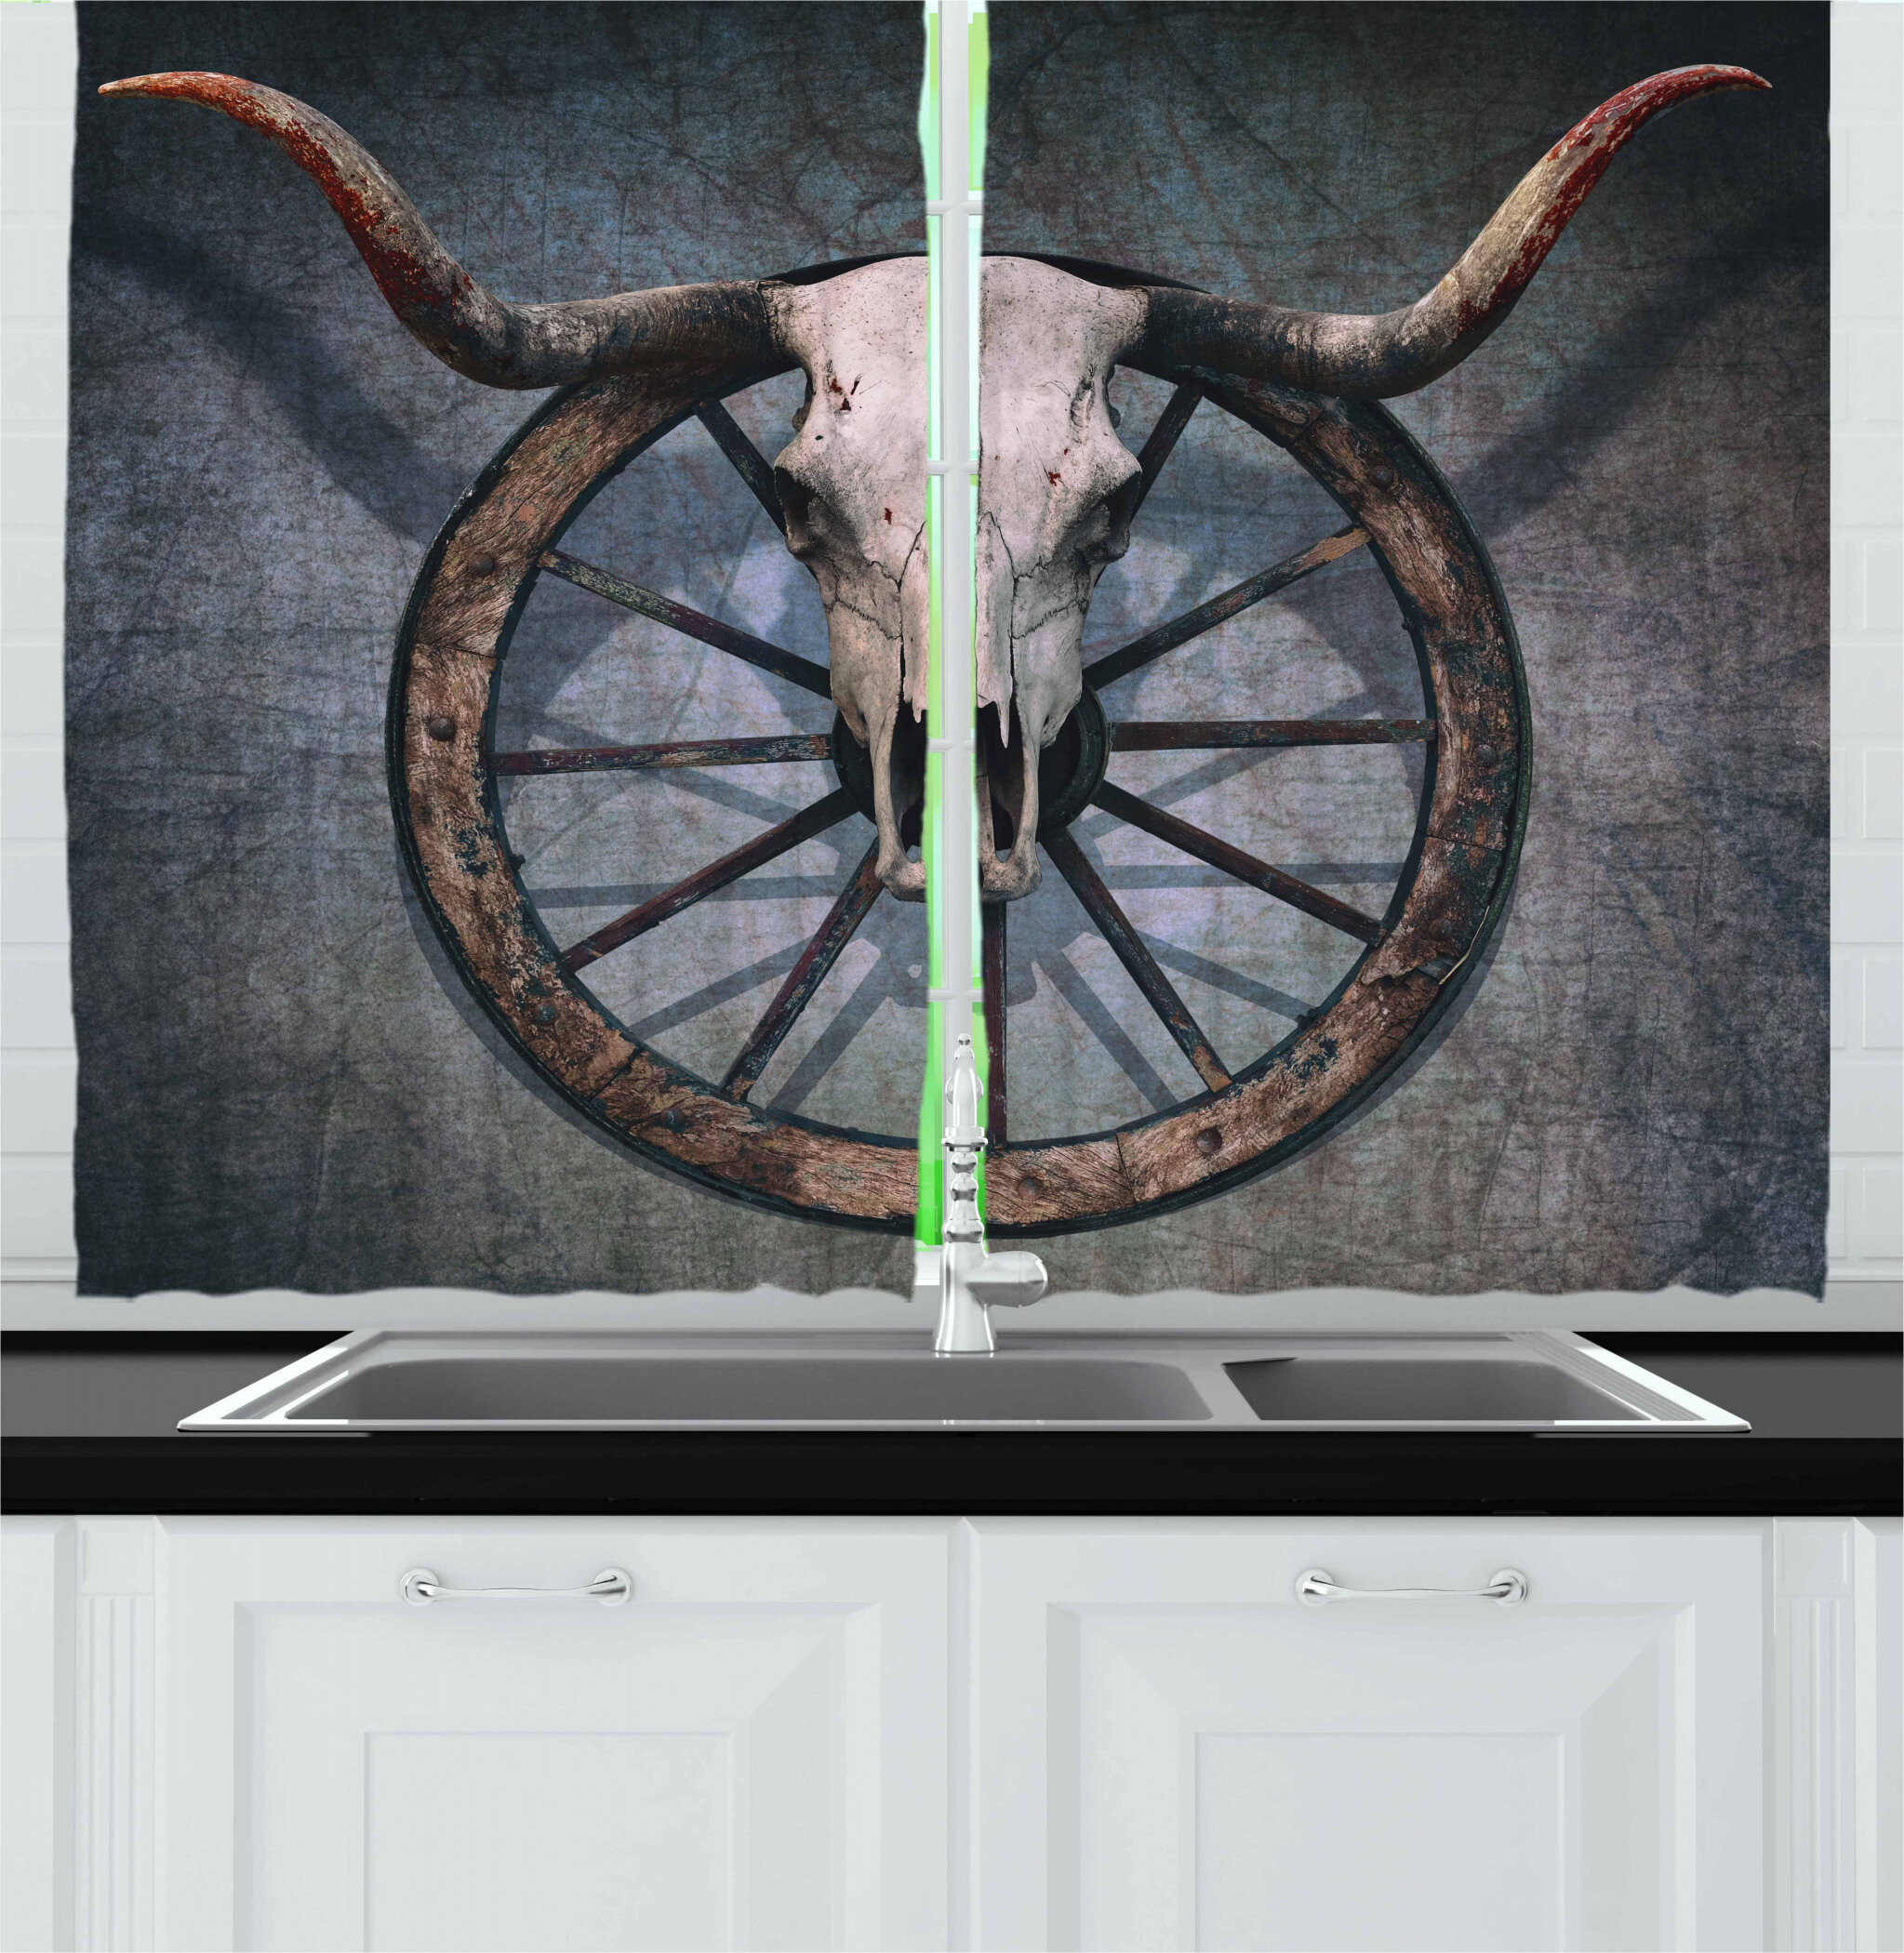 7x10 FT Barn Wood Wagon Wheel Vinyl Photography Backdrop,Long Horned Bull Skull and Old West Wagon Wheel on Rustic Wall Background for Baby Birthday Party Wedding Studio Props Photography